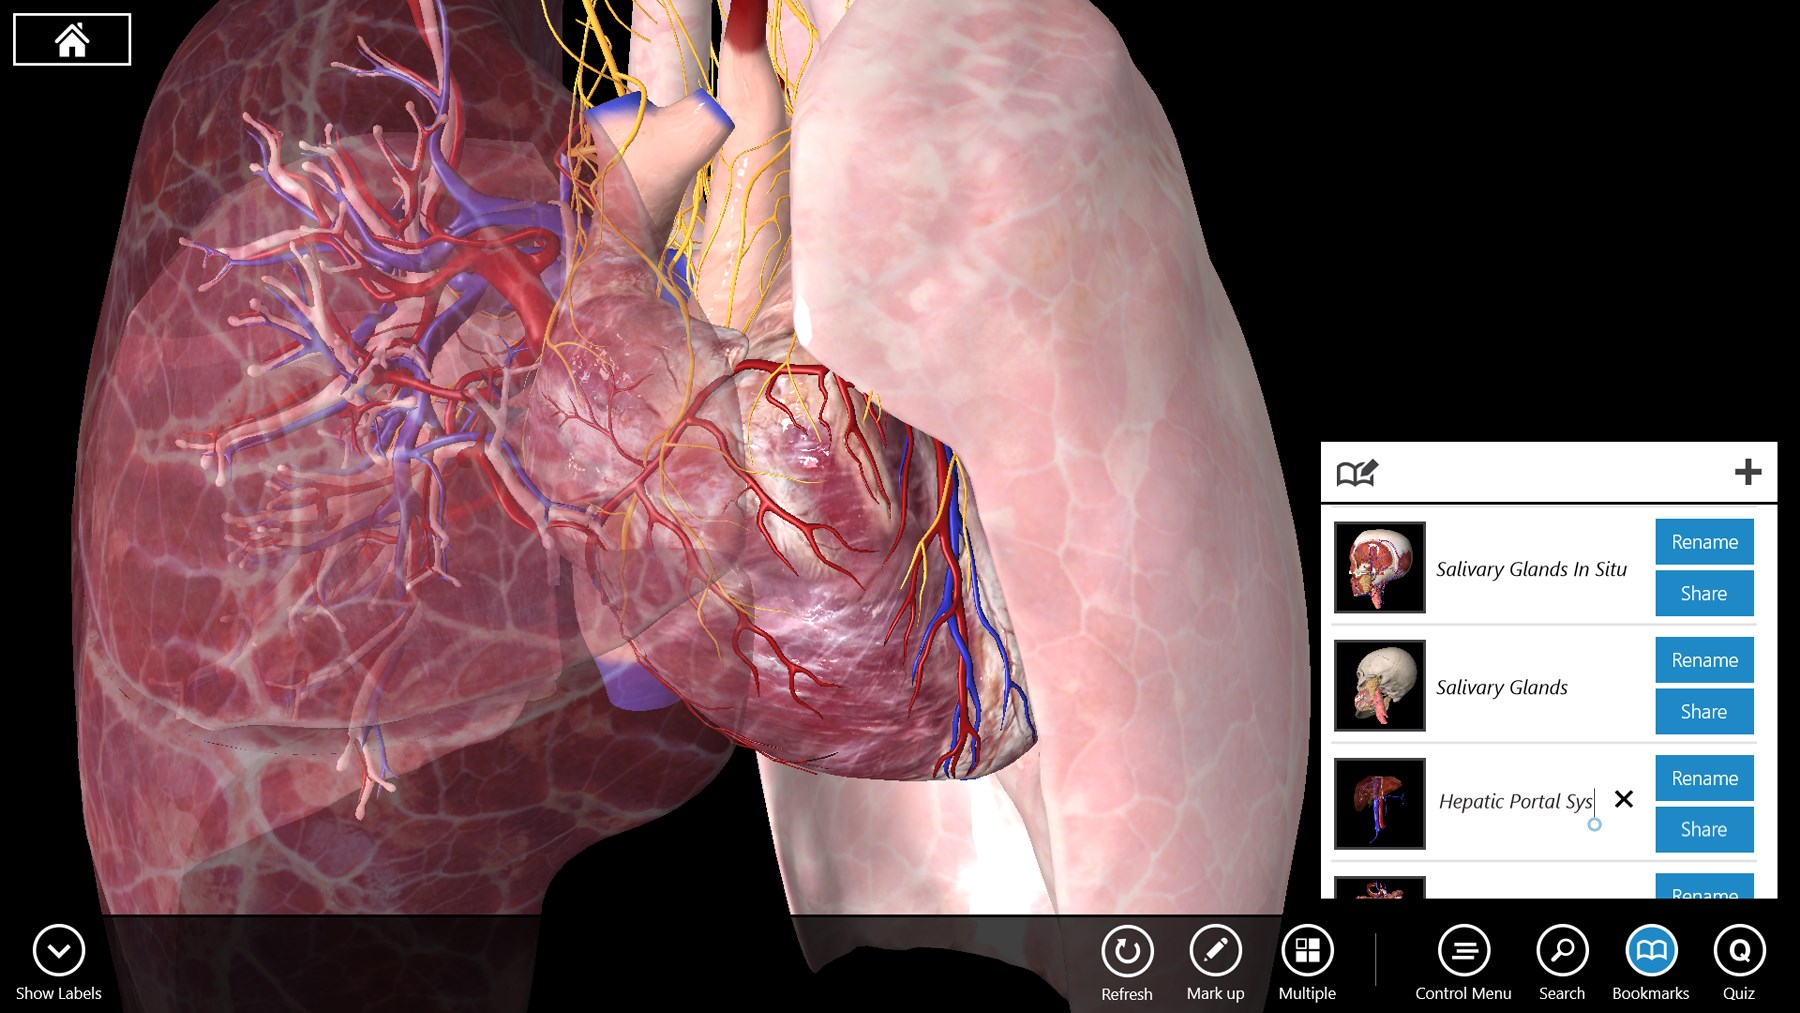 3d Anatomy App Gallery - human body anatomy